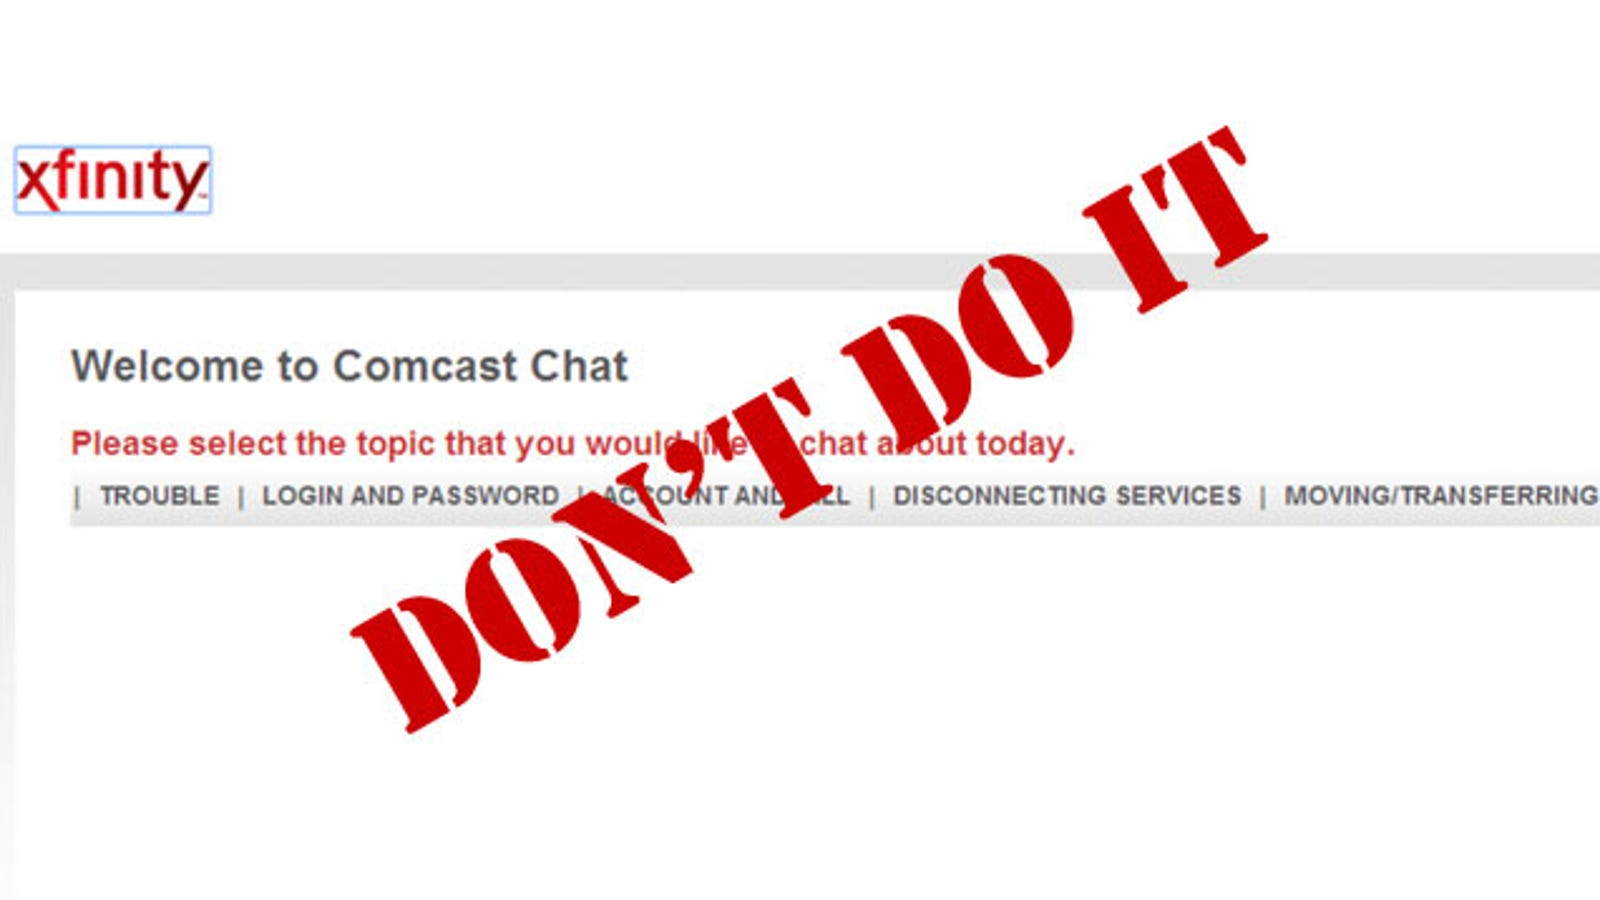 The Best Way to Deal with (Comcast) Customer Service May Be